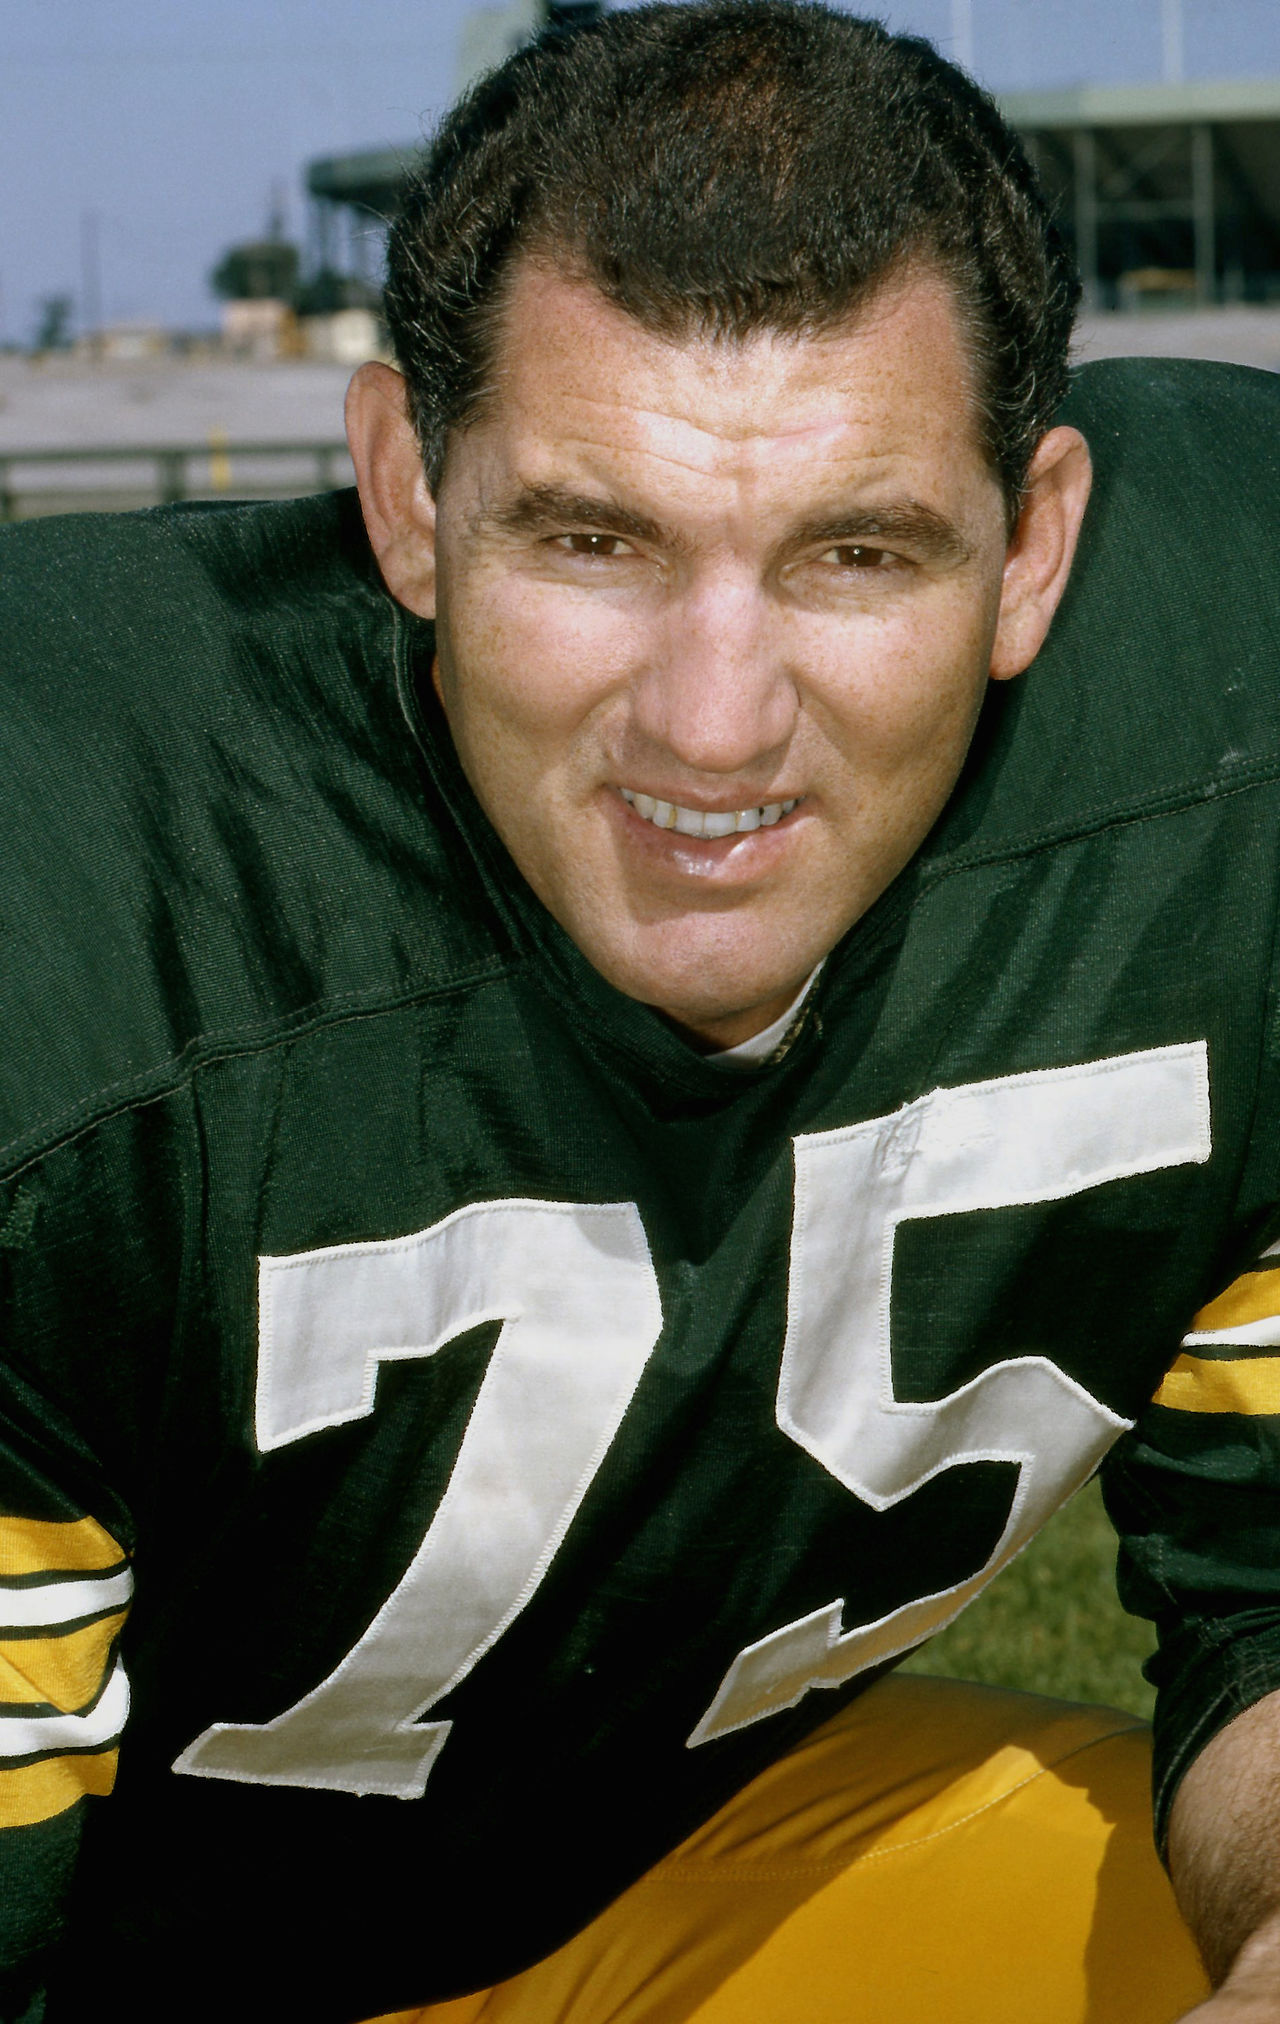 Green Bay Packers Hall of Fame tackle Forrest Gregg (75)  poses for a headshot at Lambeau Field in Green Bay, Wis. on Aug. 11, 1965.